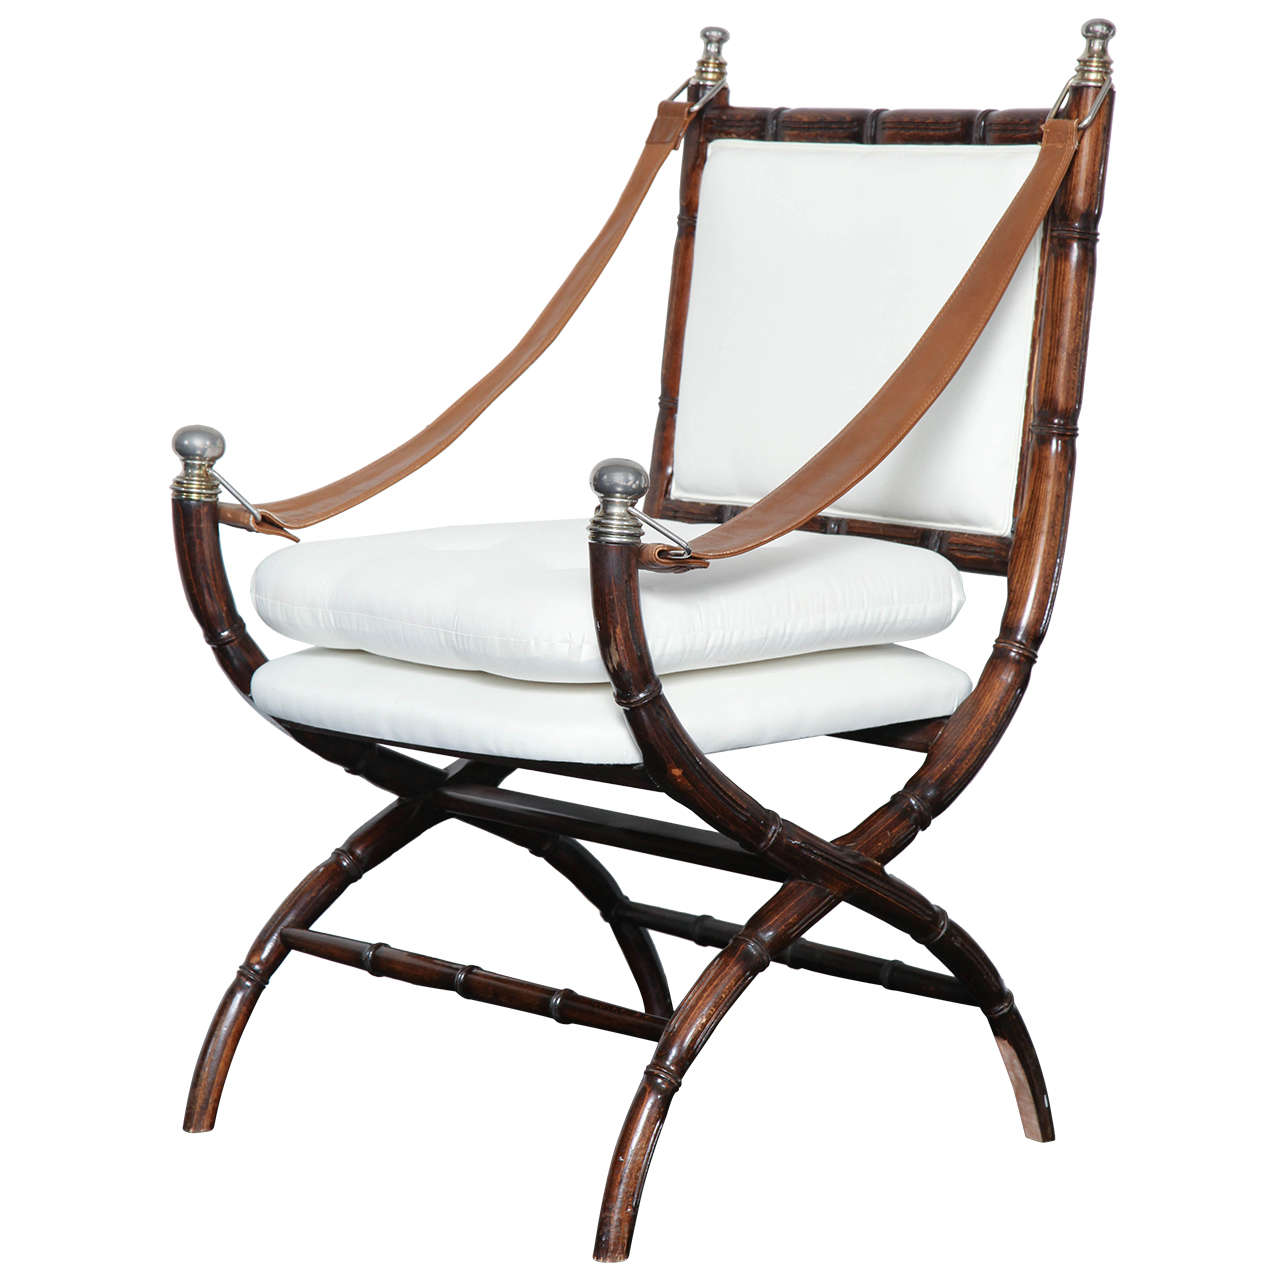 sling chairs for sale quantum power chair charger midcentury rosewood at 1stdibs